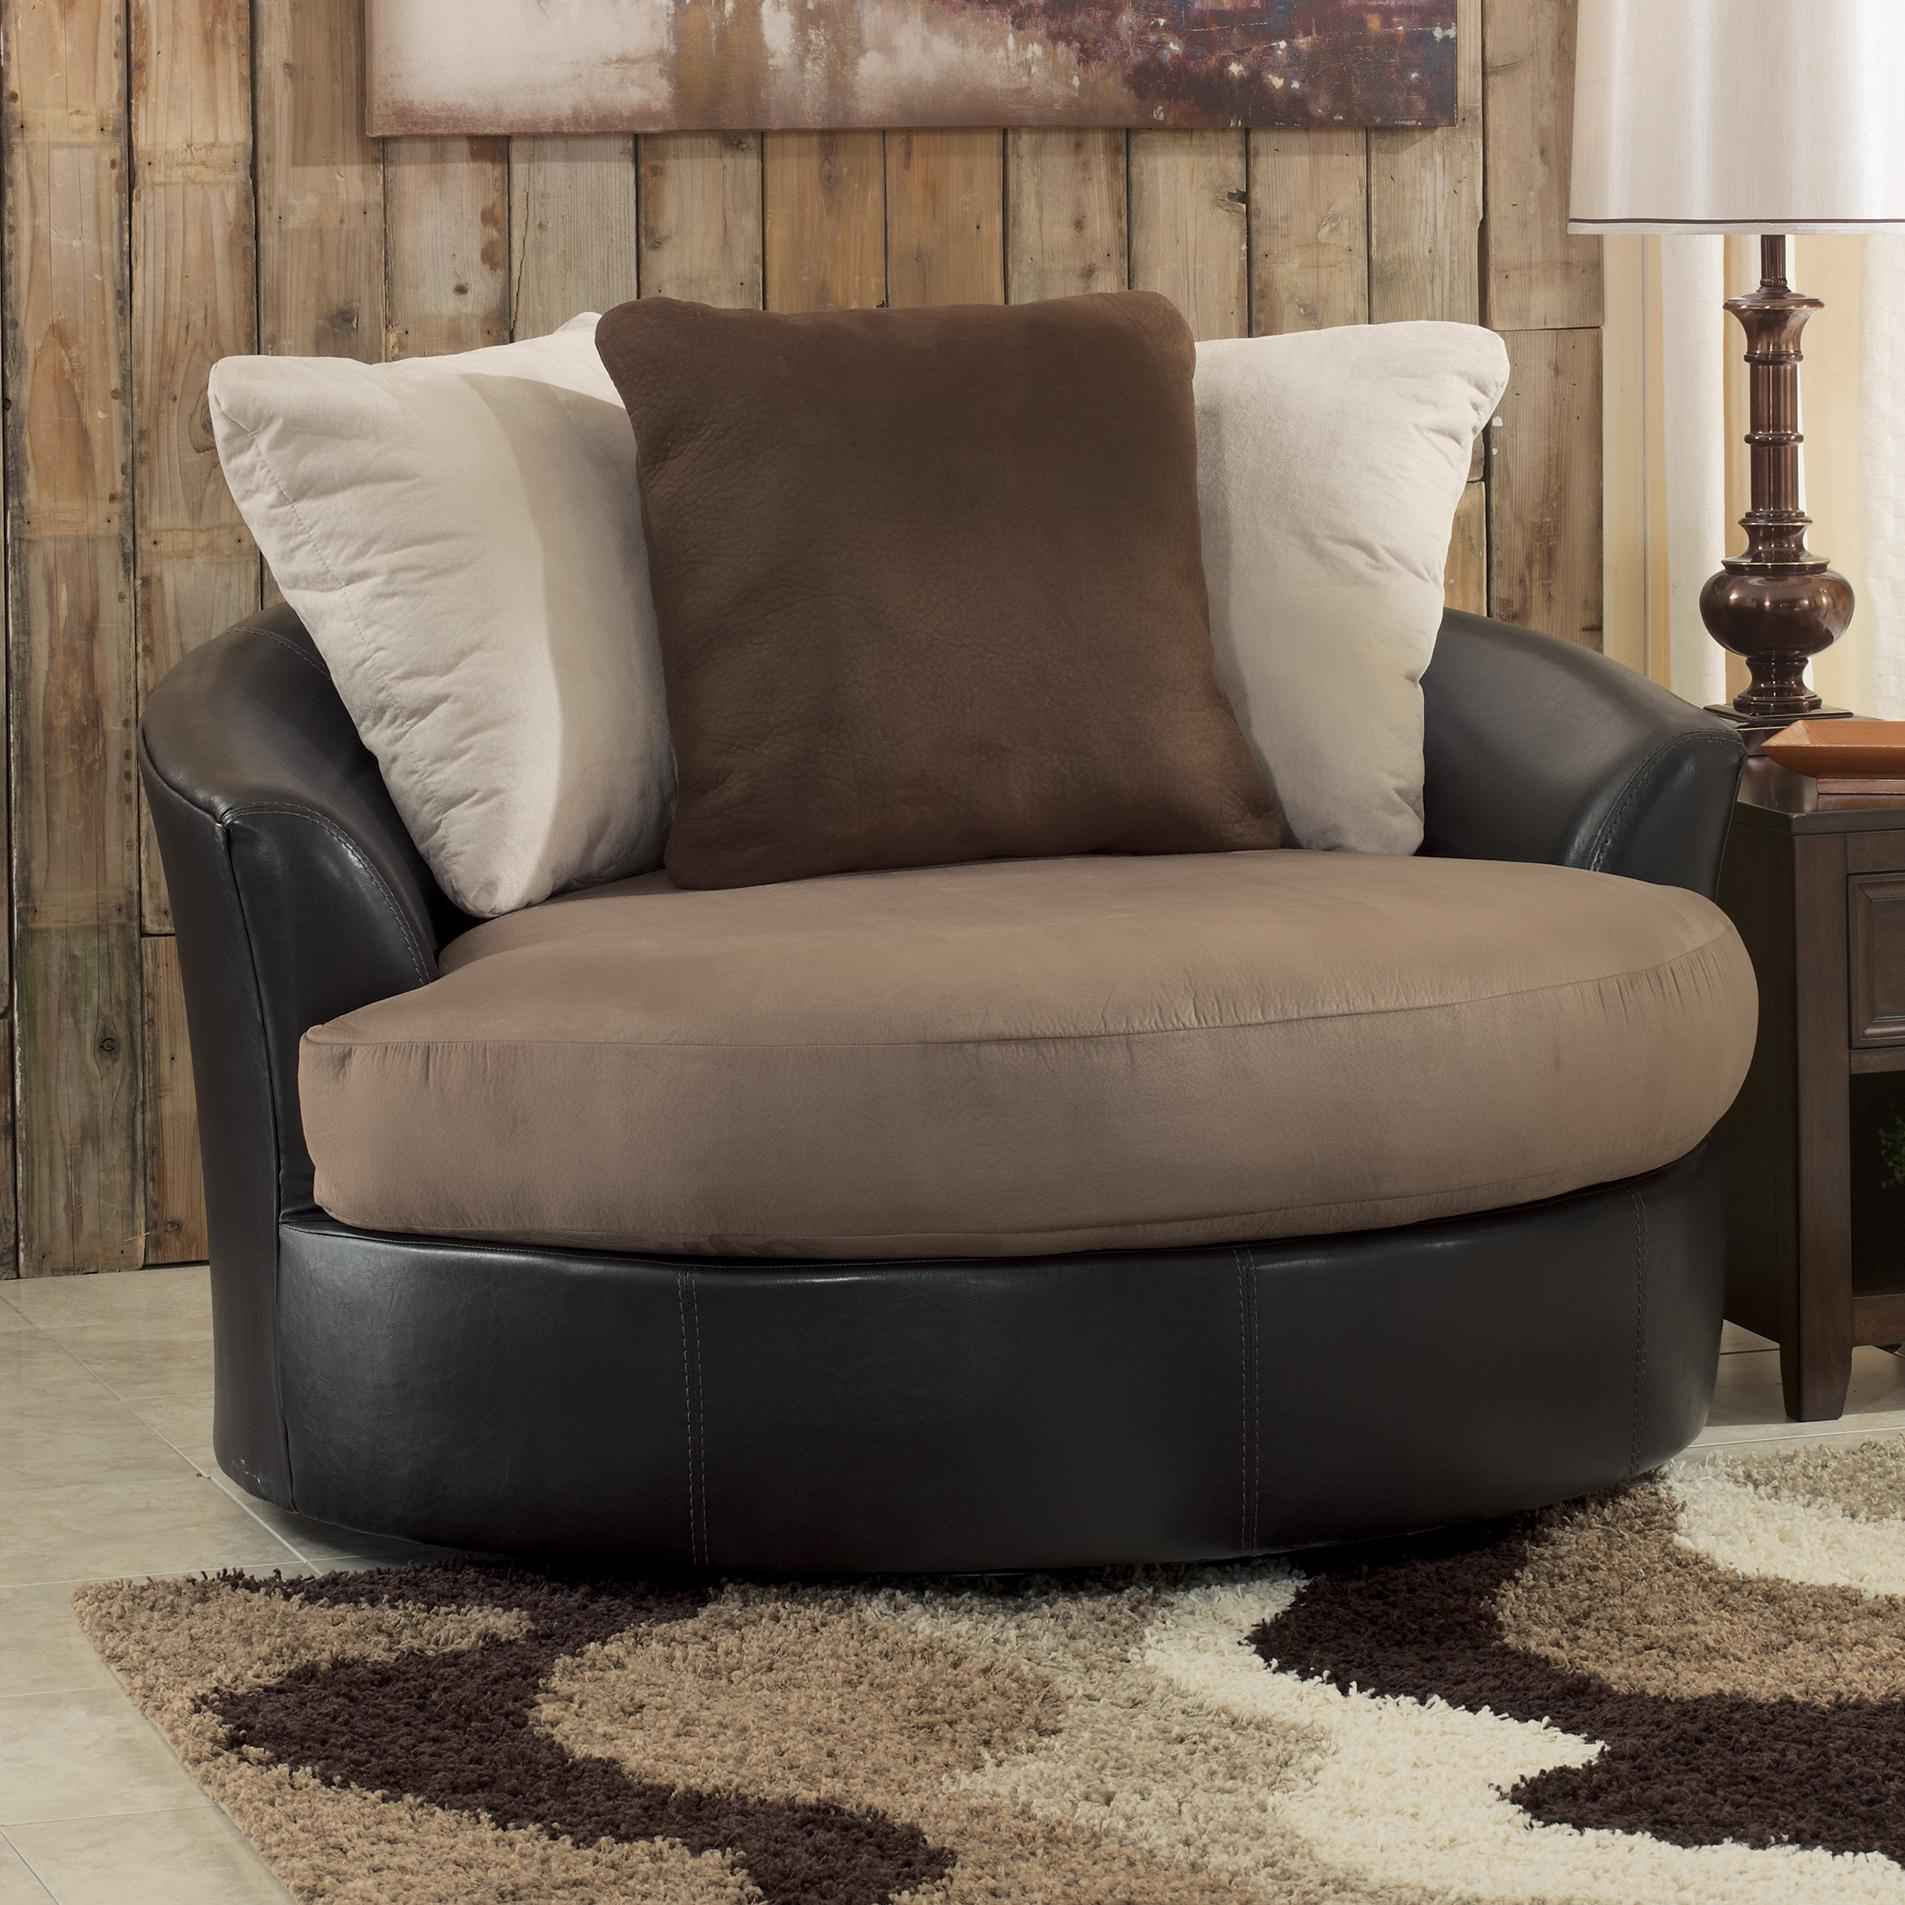 Benchcraft Masoli - Mocha Oversized Swivel Accent Chair - Item Number: 1420121